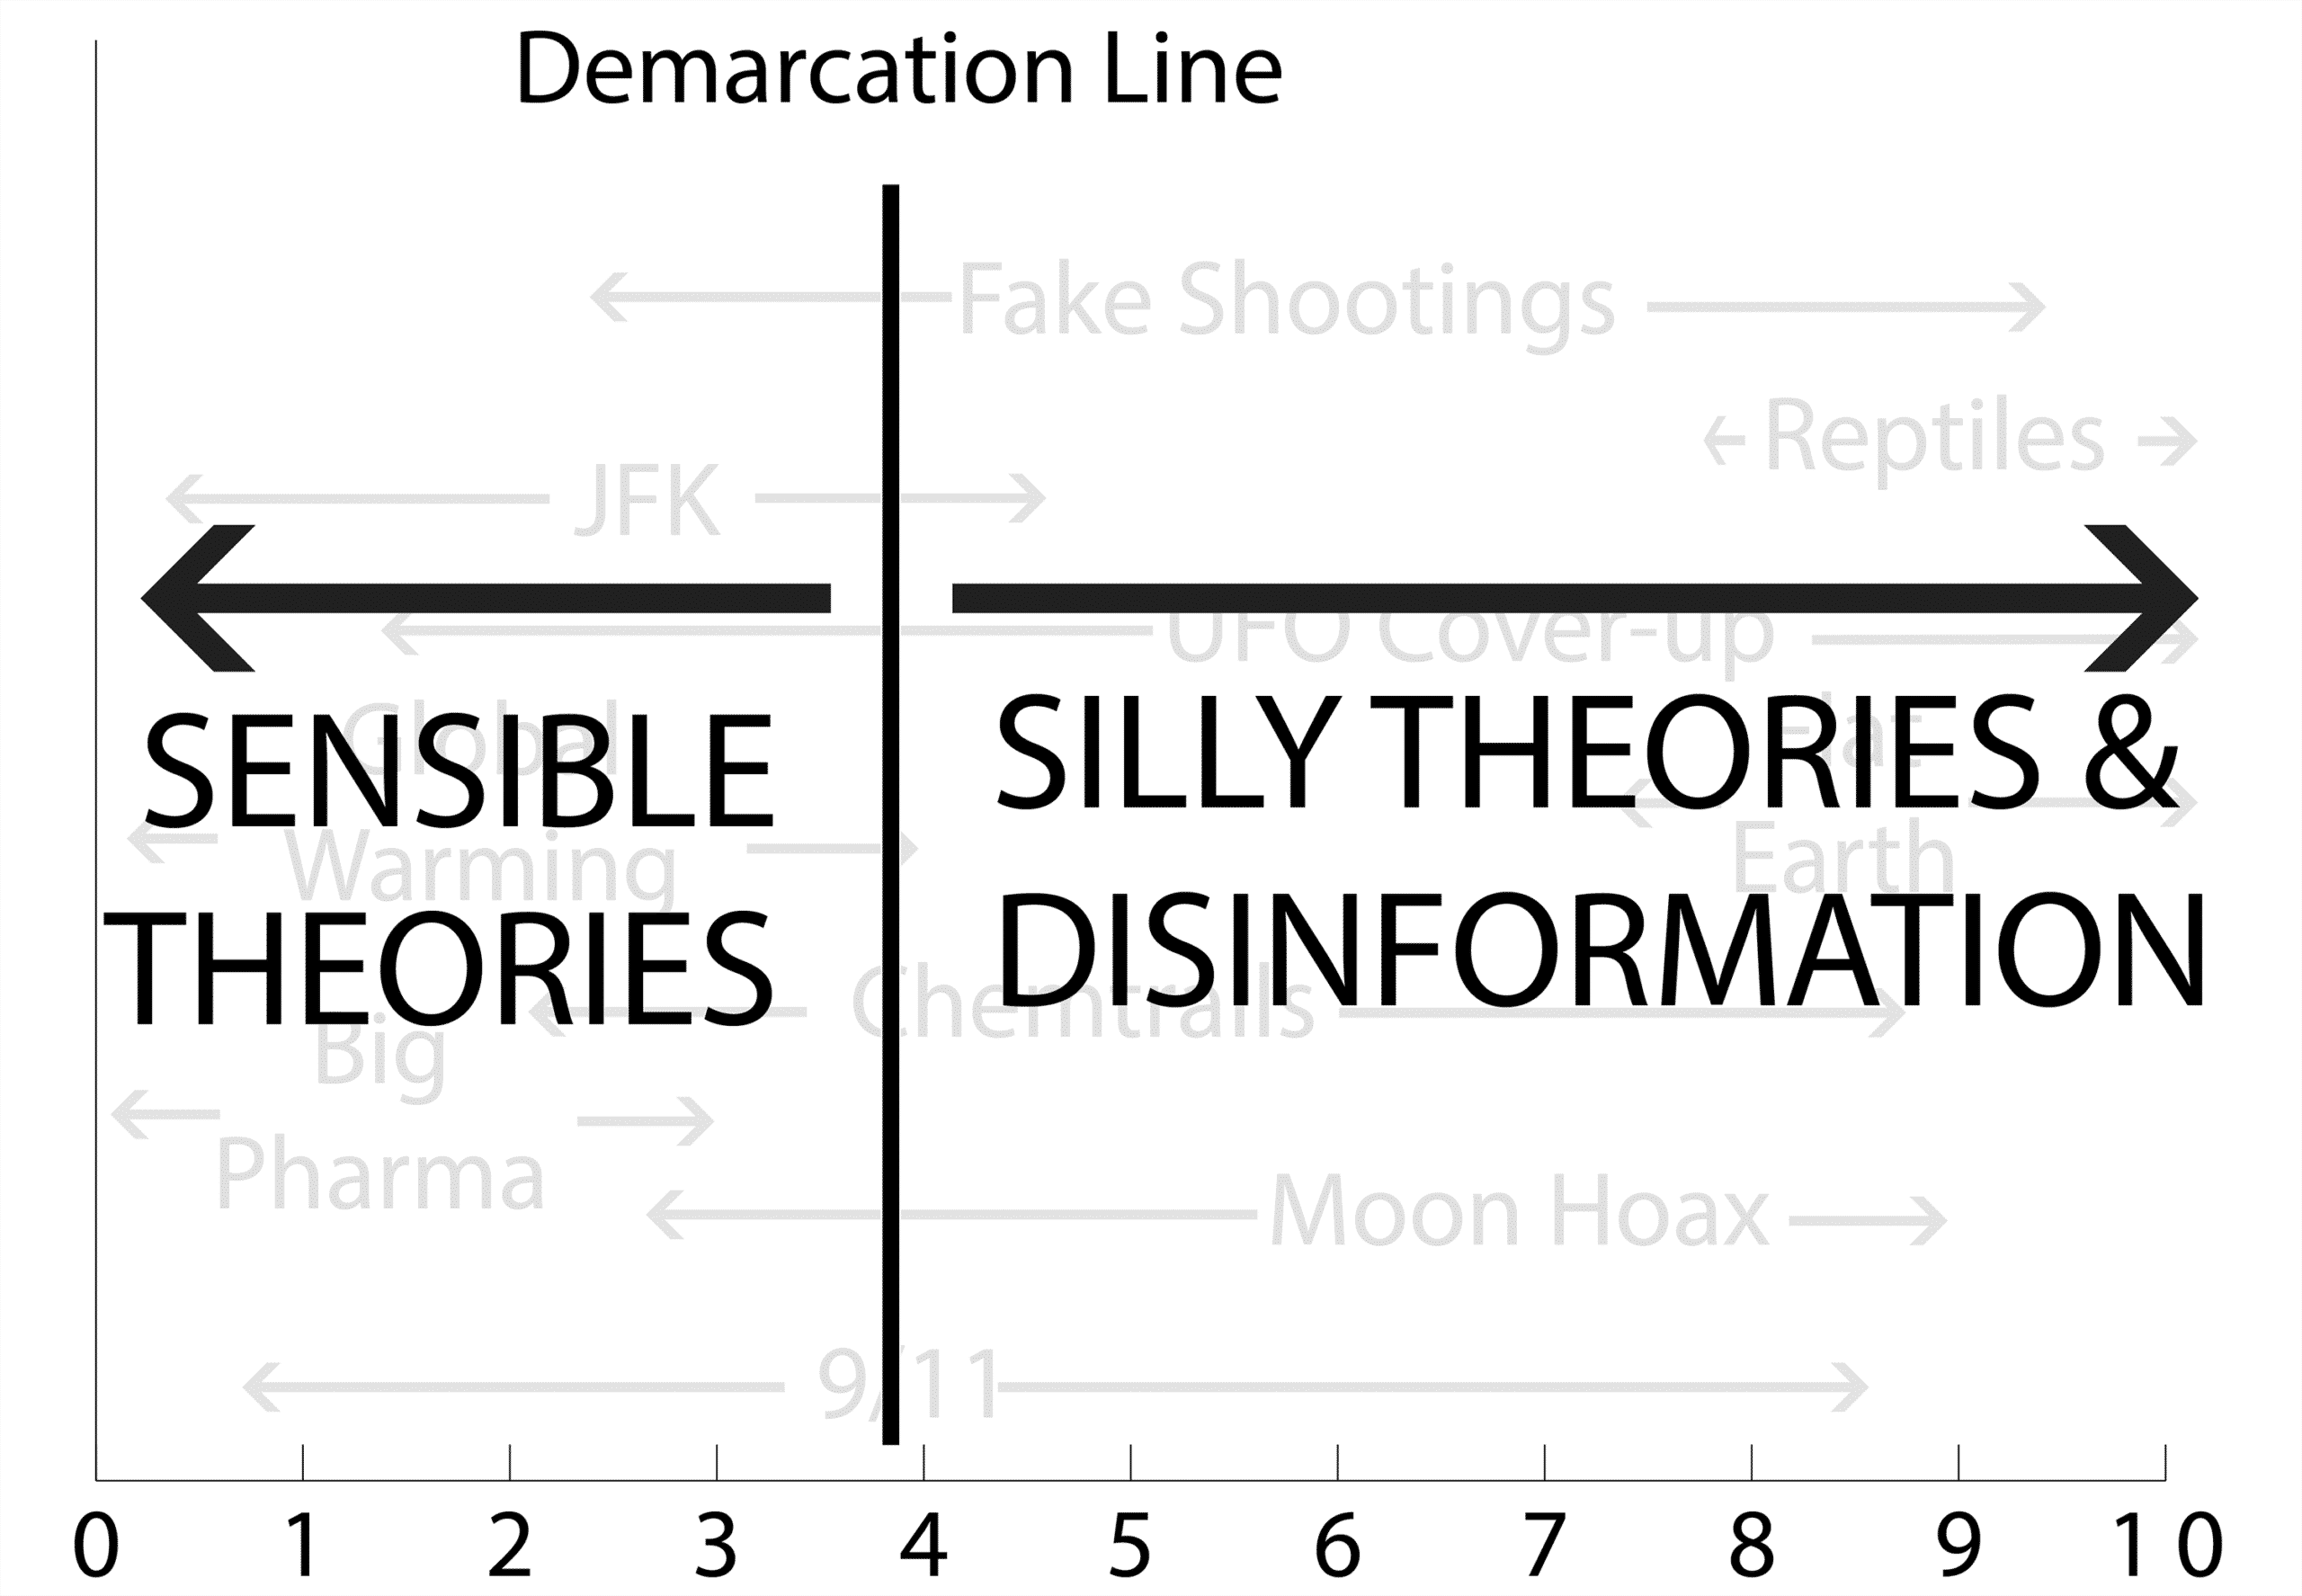 demarcation line between sensible theories and silly theories and disinformation